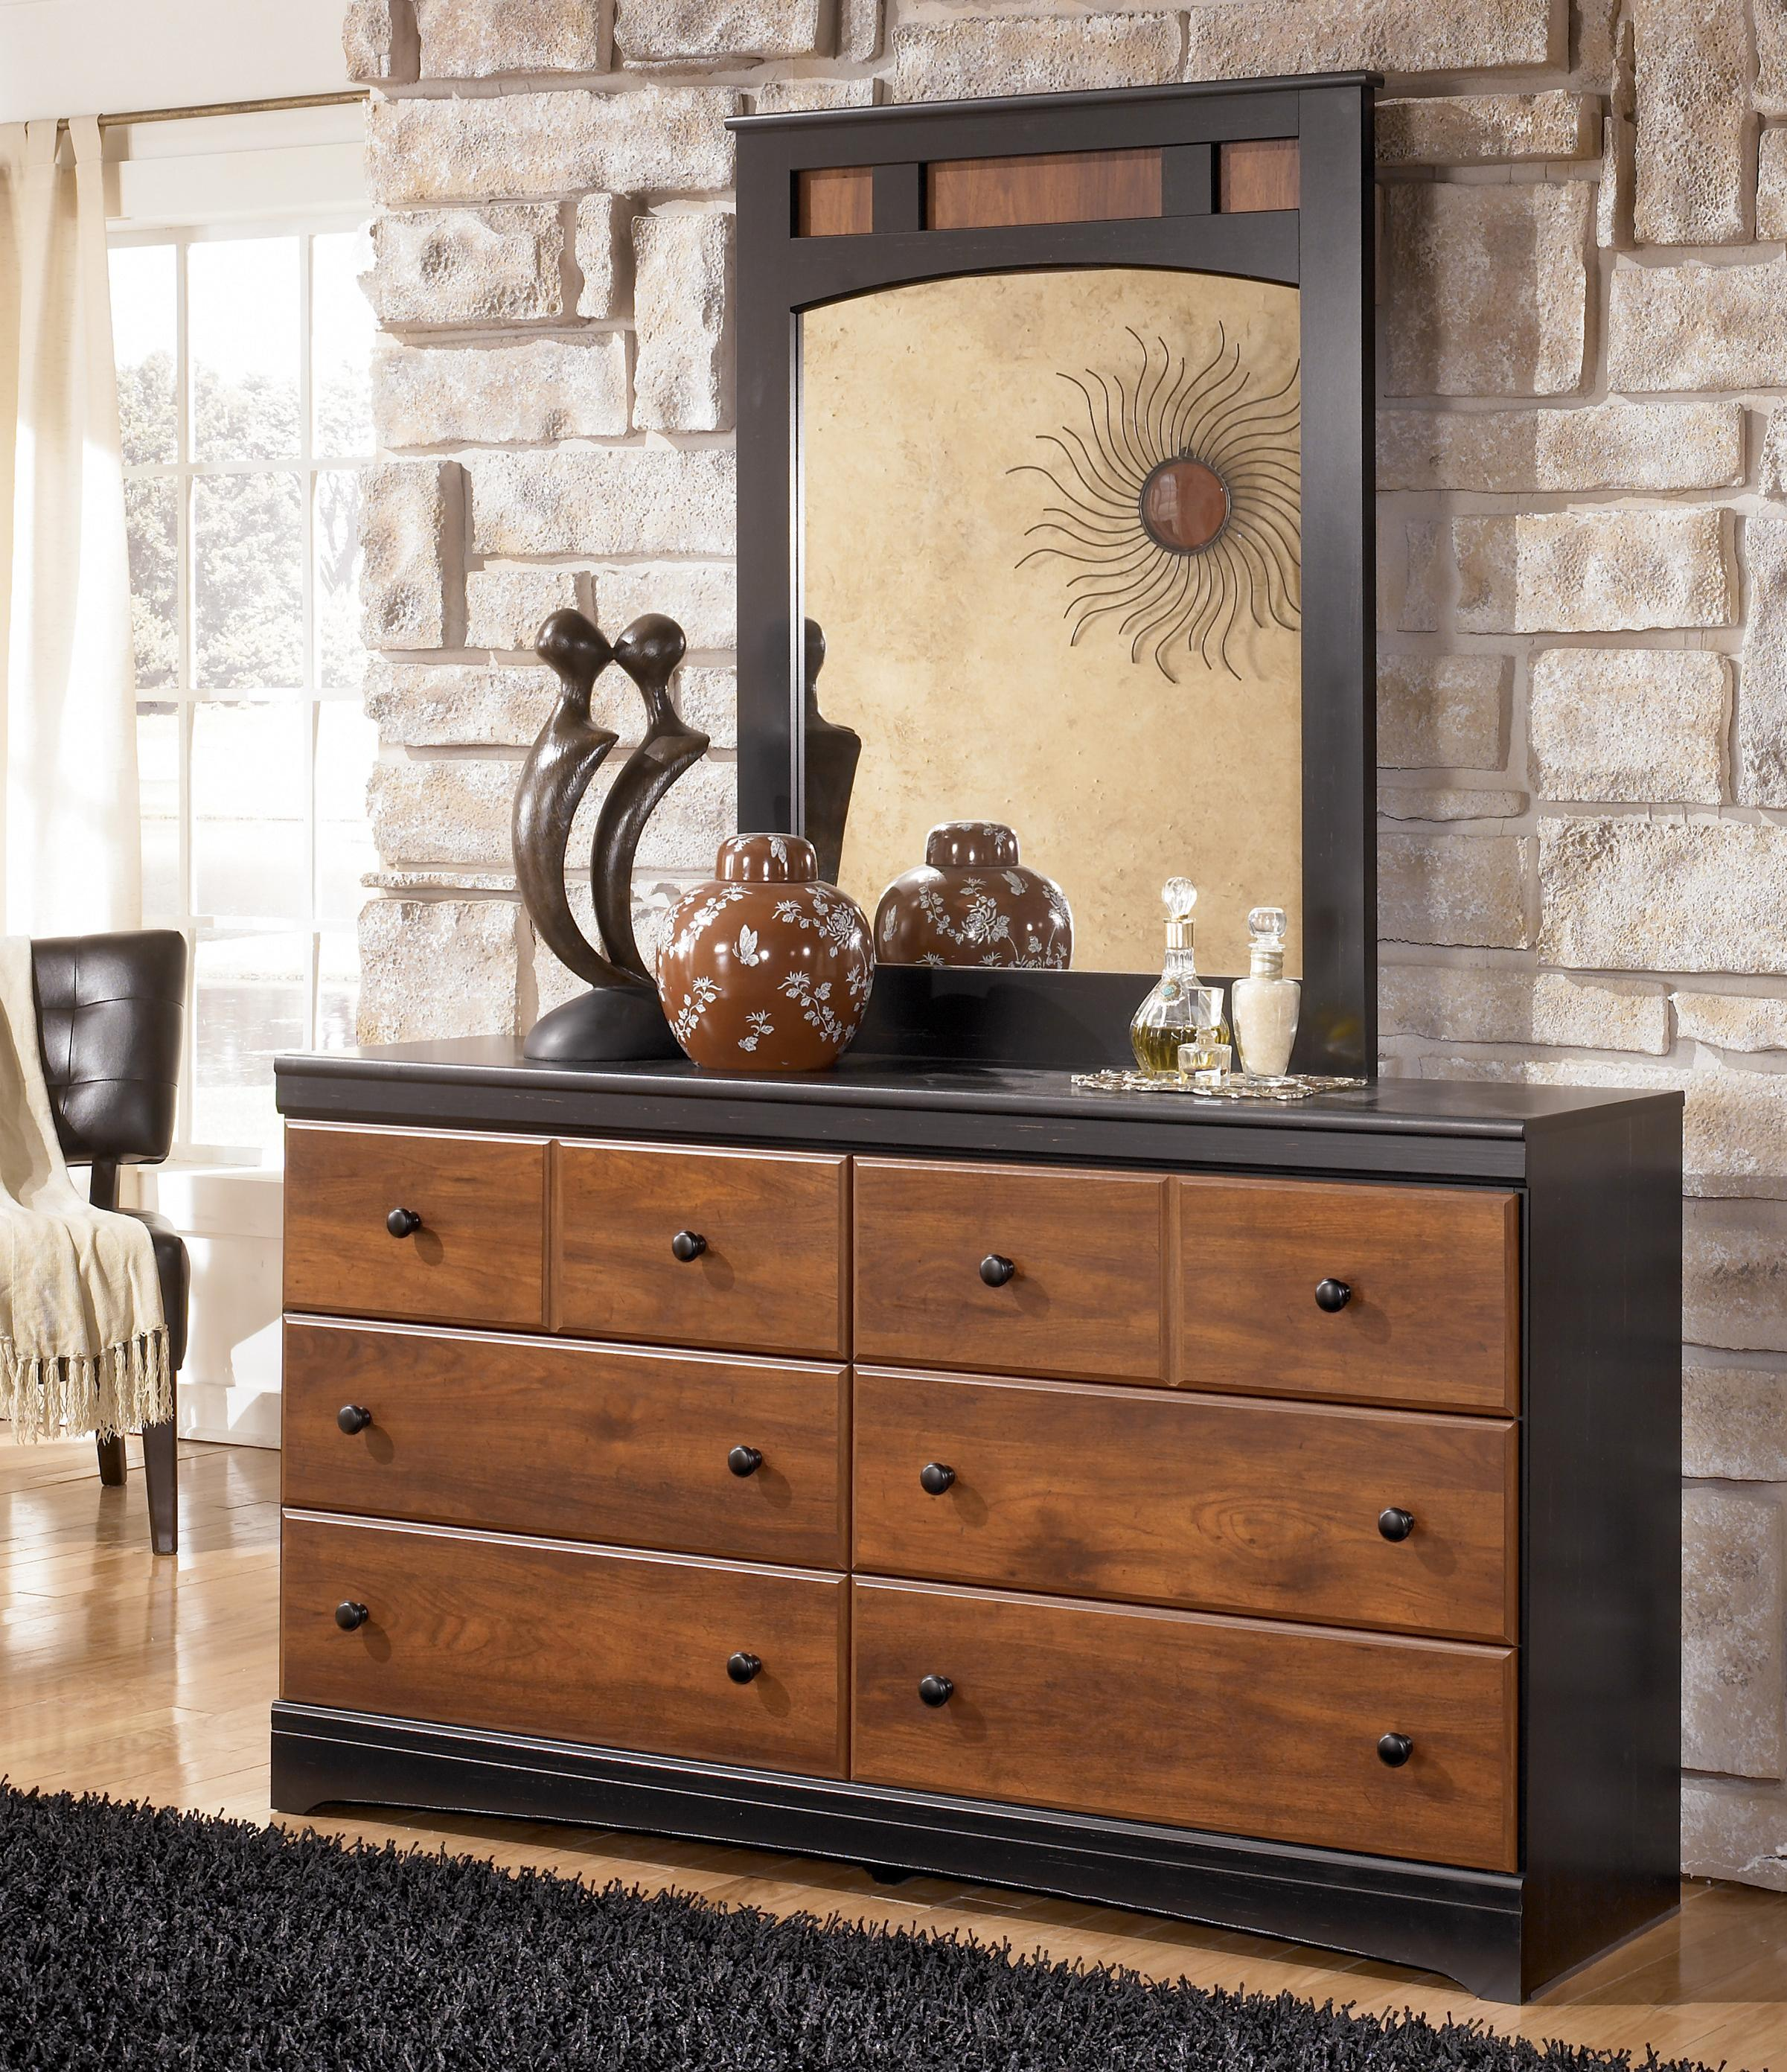 Signature Design by Ashley Aimwell Dresser & Mirror - Item Number: B136-31+36